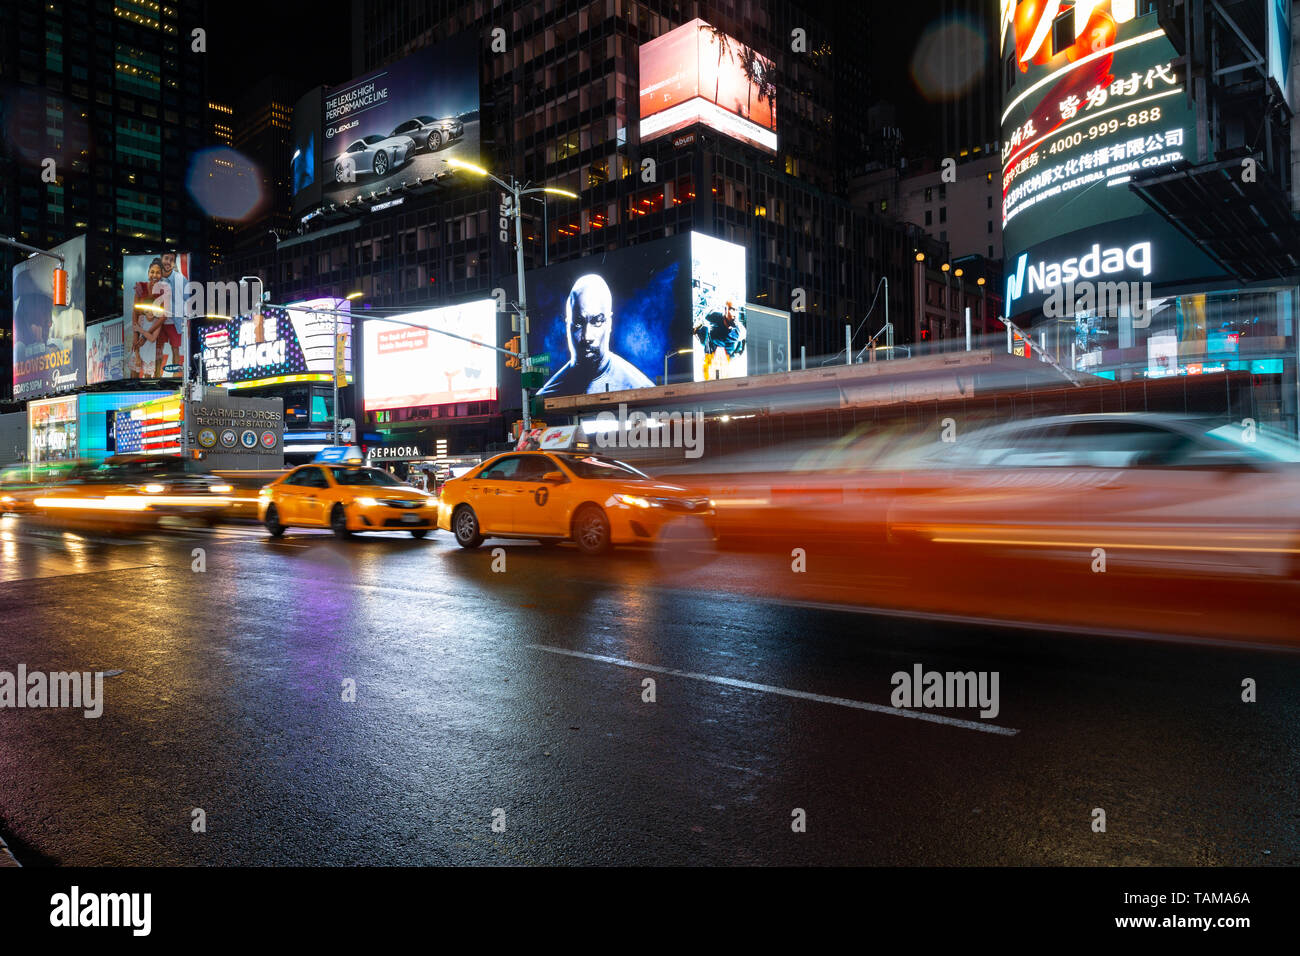 Long exposure of taxis in Times Square at night - New York, NY Stock Photo